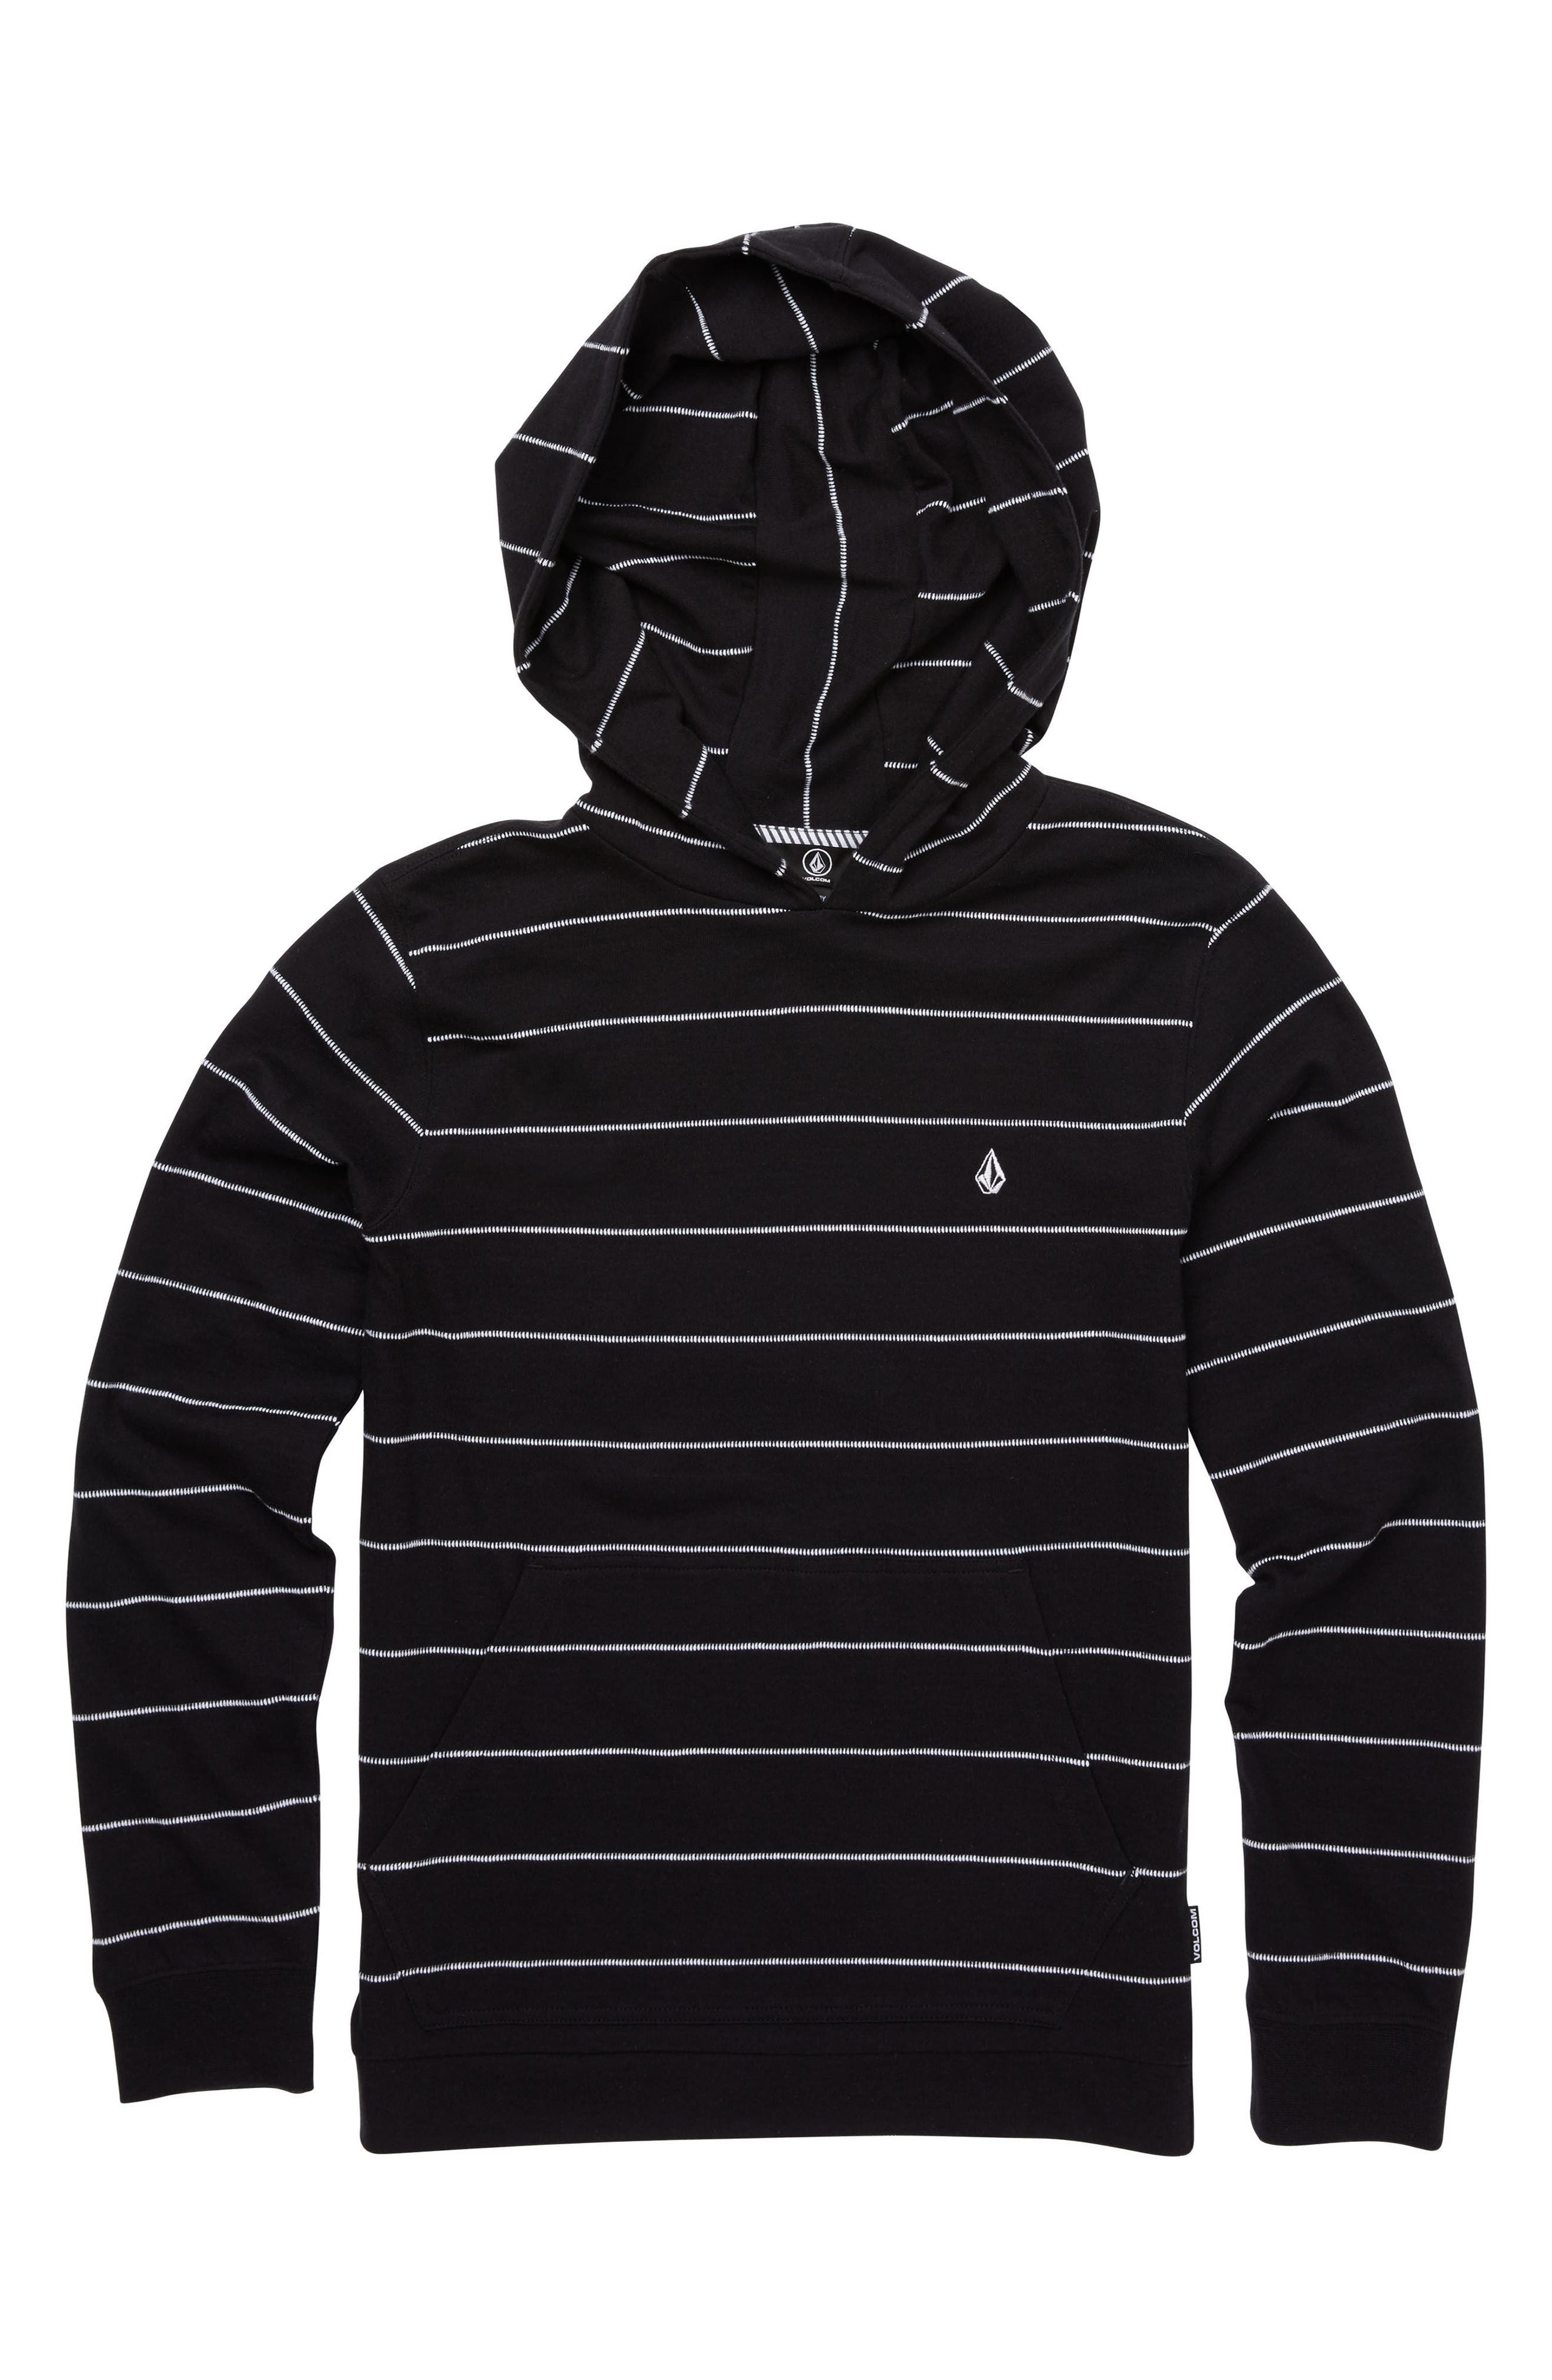 Wallace Hoodie,                         Main,                         color, Black